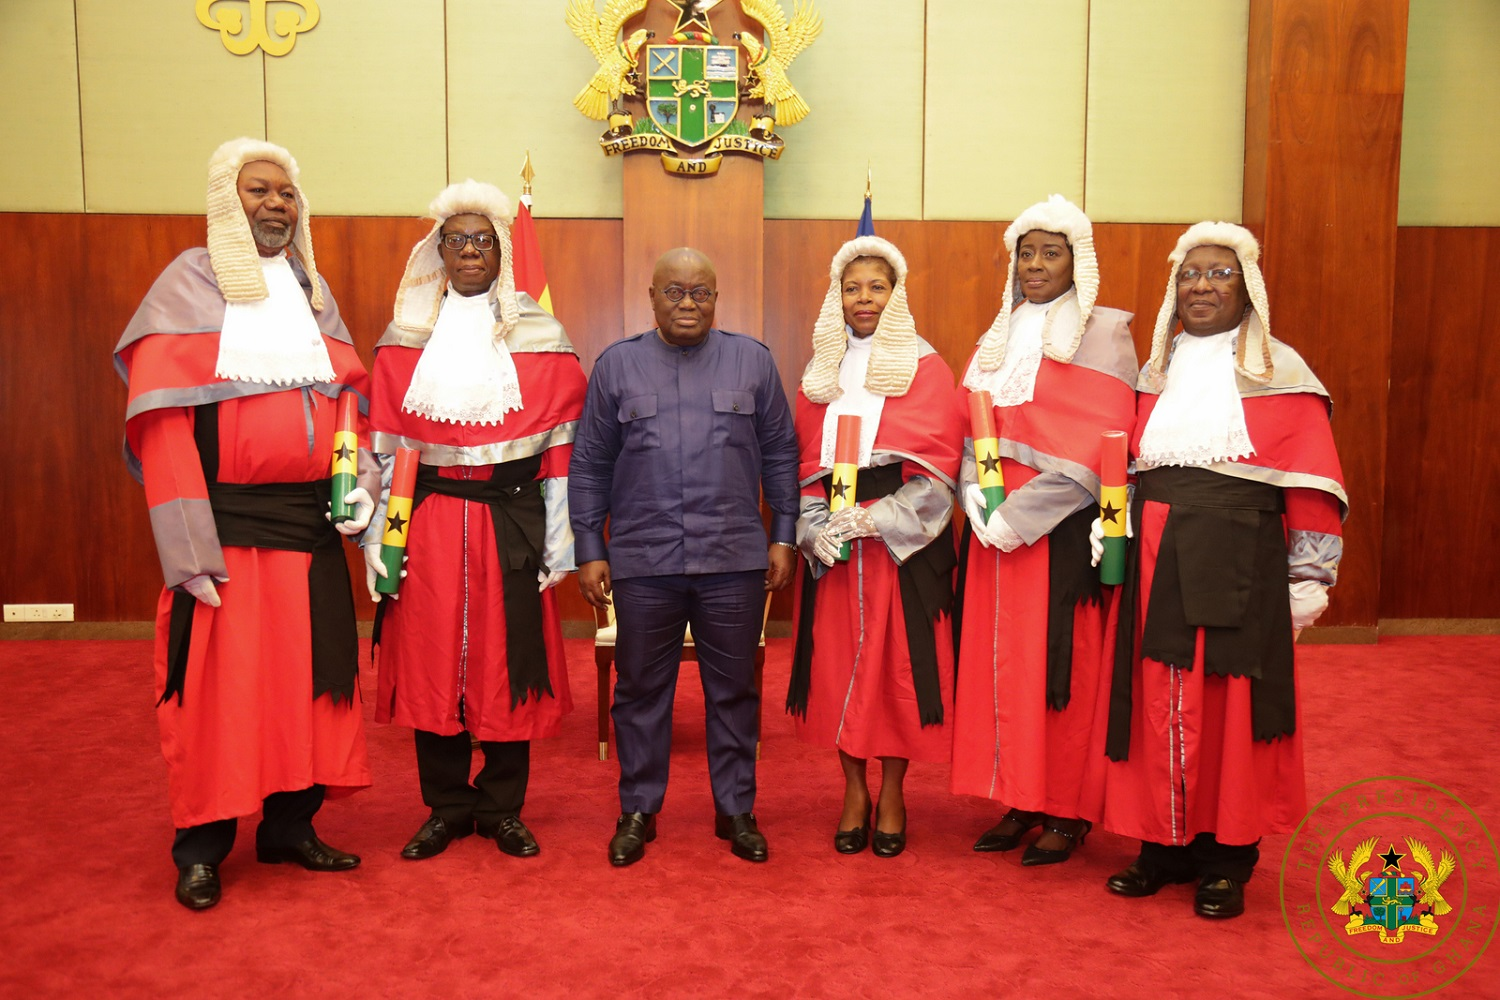 President Akufo-Addo with the 5 new court of Appeals judges